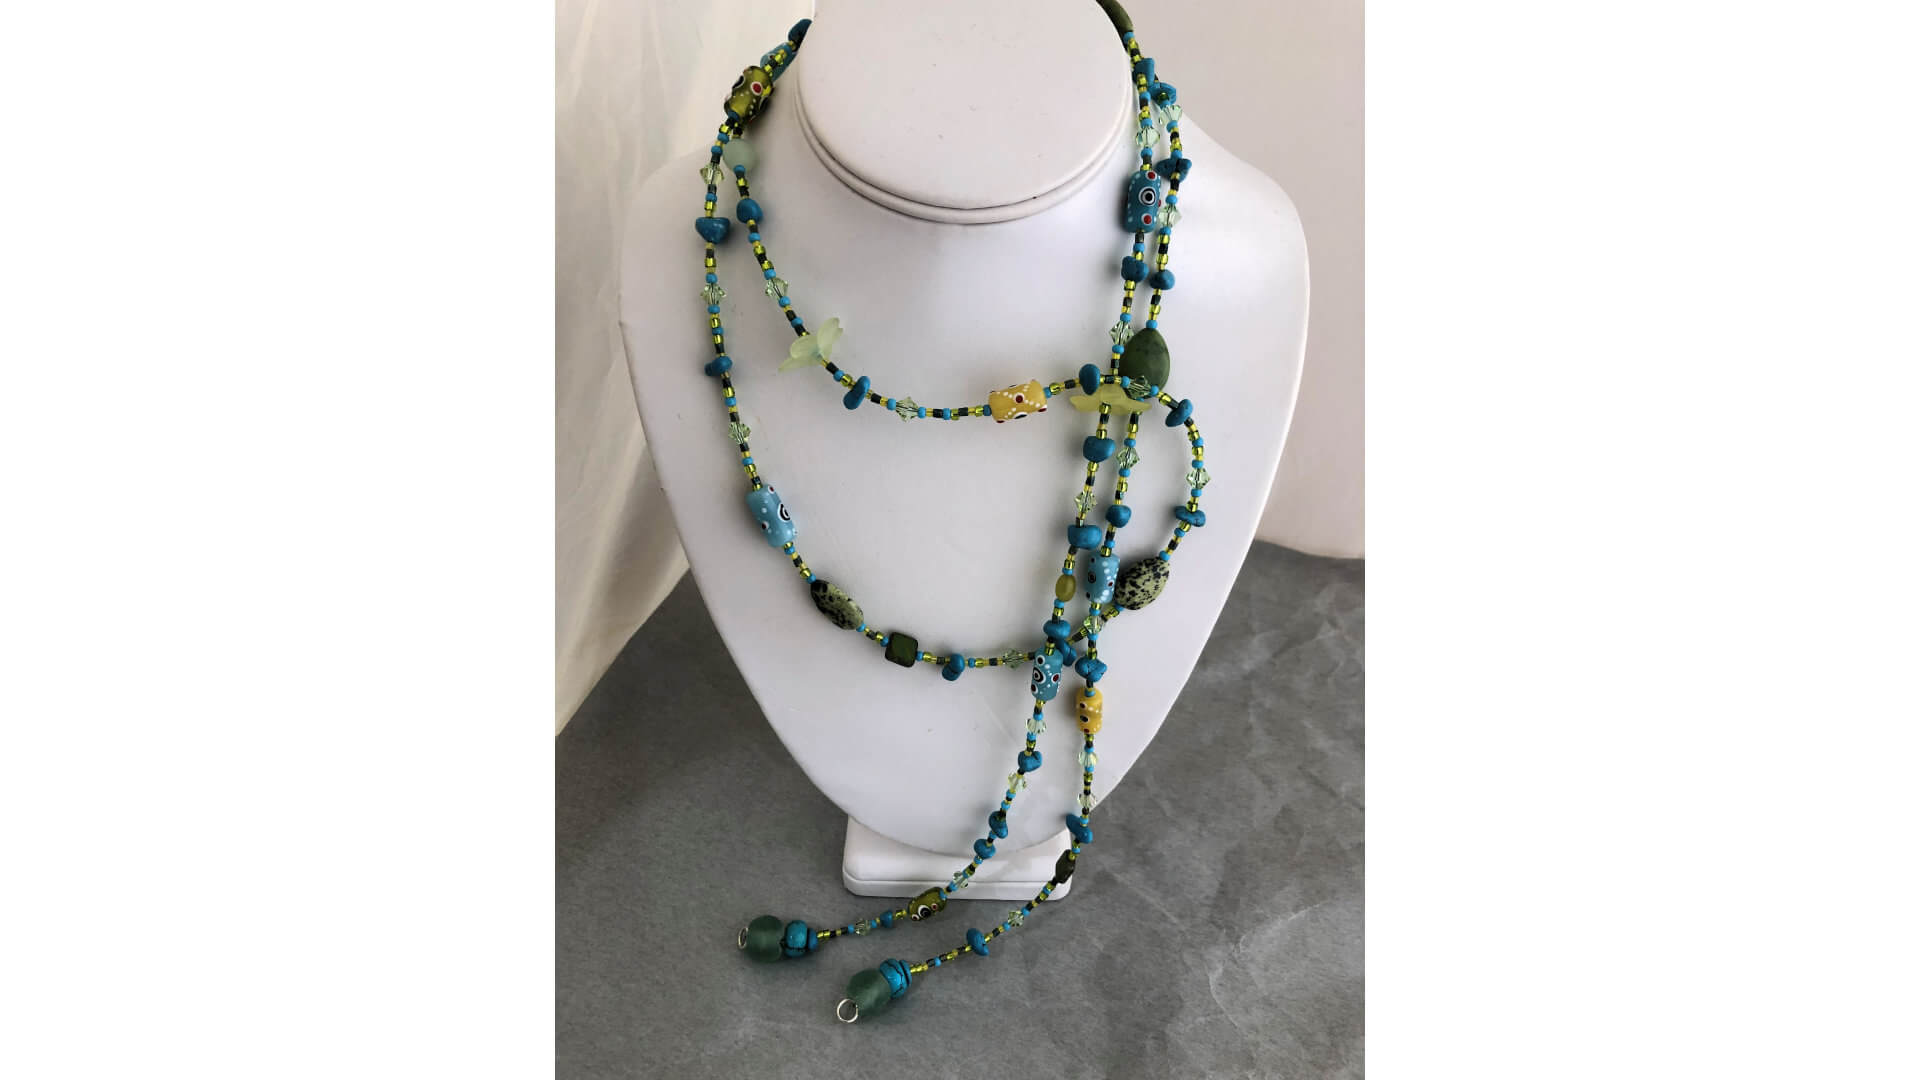 Aqua and Green Beaded Lariat Necklace by Susan Hazer Designs